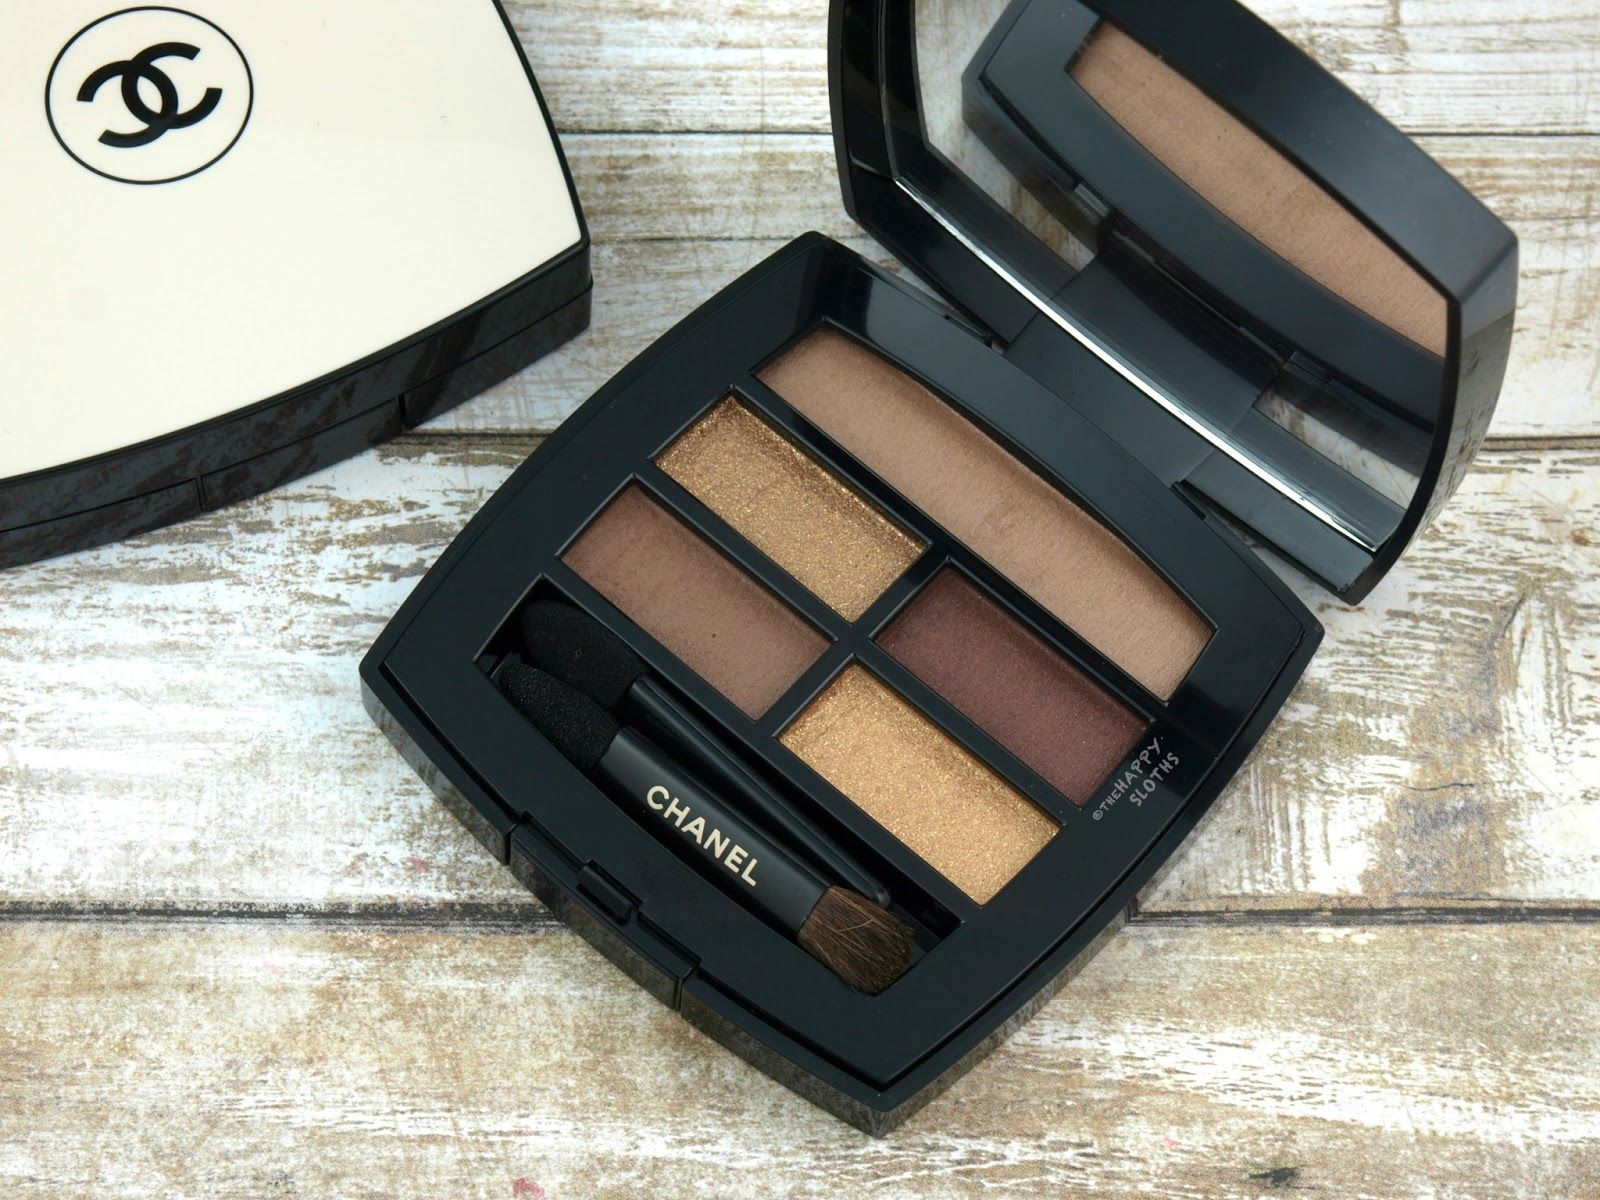 Chanel Les Beiges 2018 Collection Review and Swatches